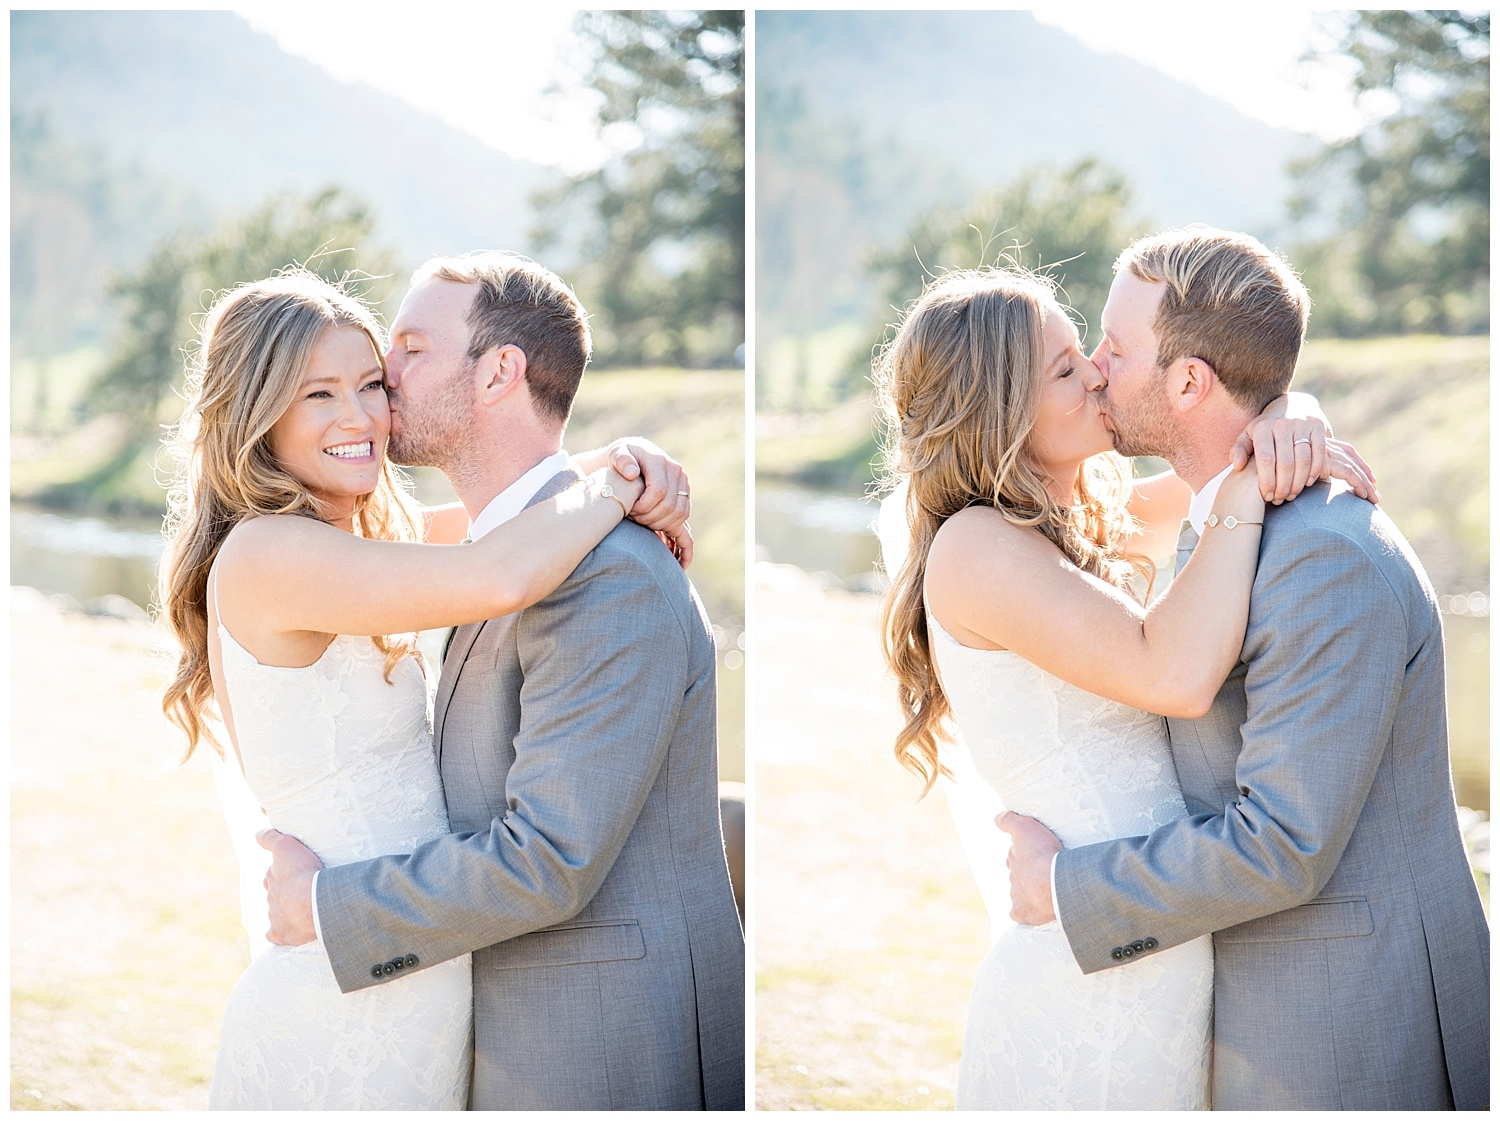 Farm_Wedding_Photographer_Evergreen_Lake_House_Colorado_Barn_Destination_Hawaii_Photography_Mountain_Weddings_024.jpg